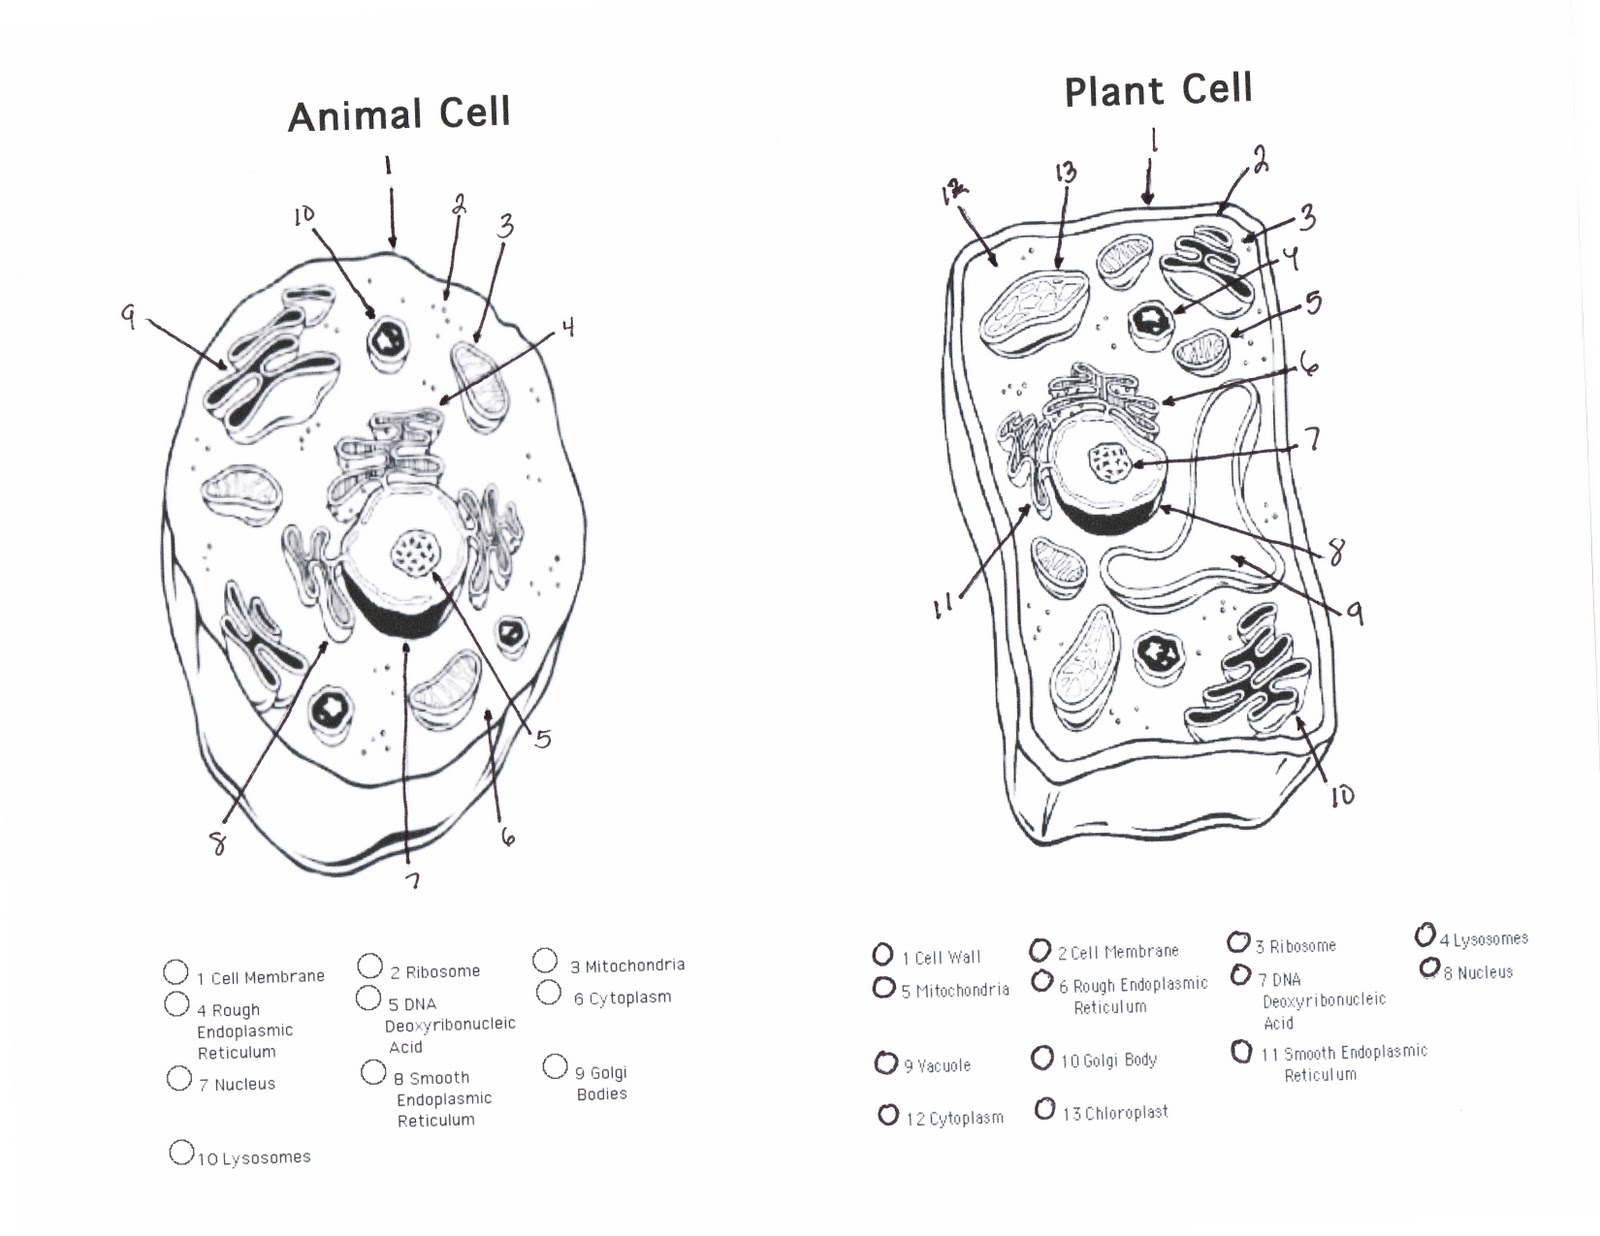 Worksheet Animal Cell Worksheet plant cell vs animal worksheet delwfg com function